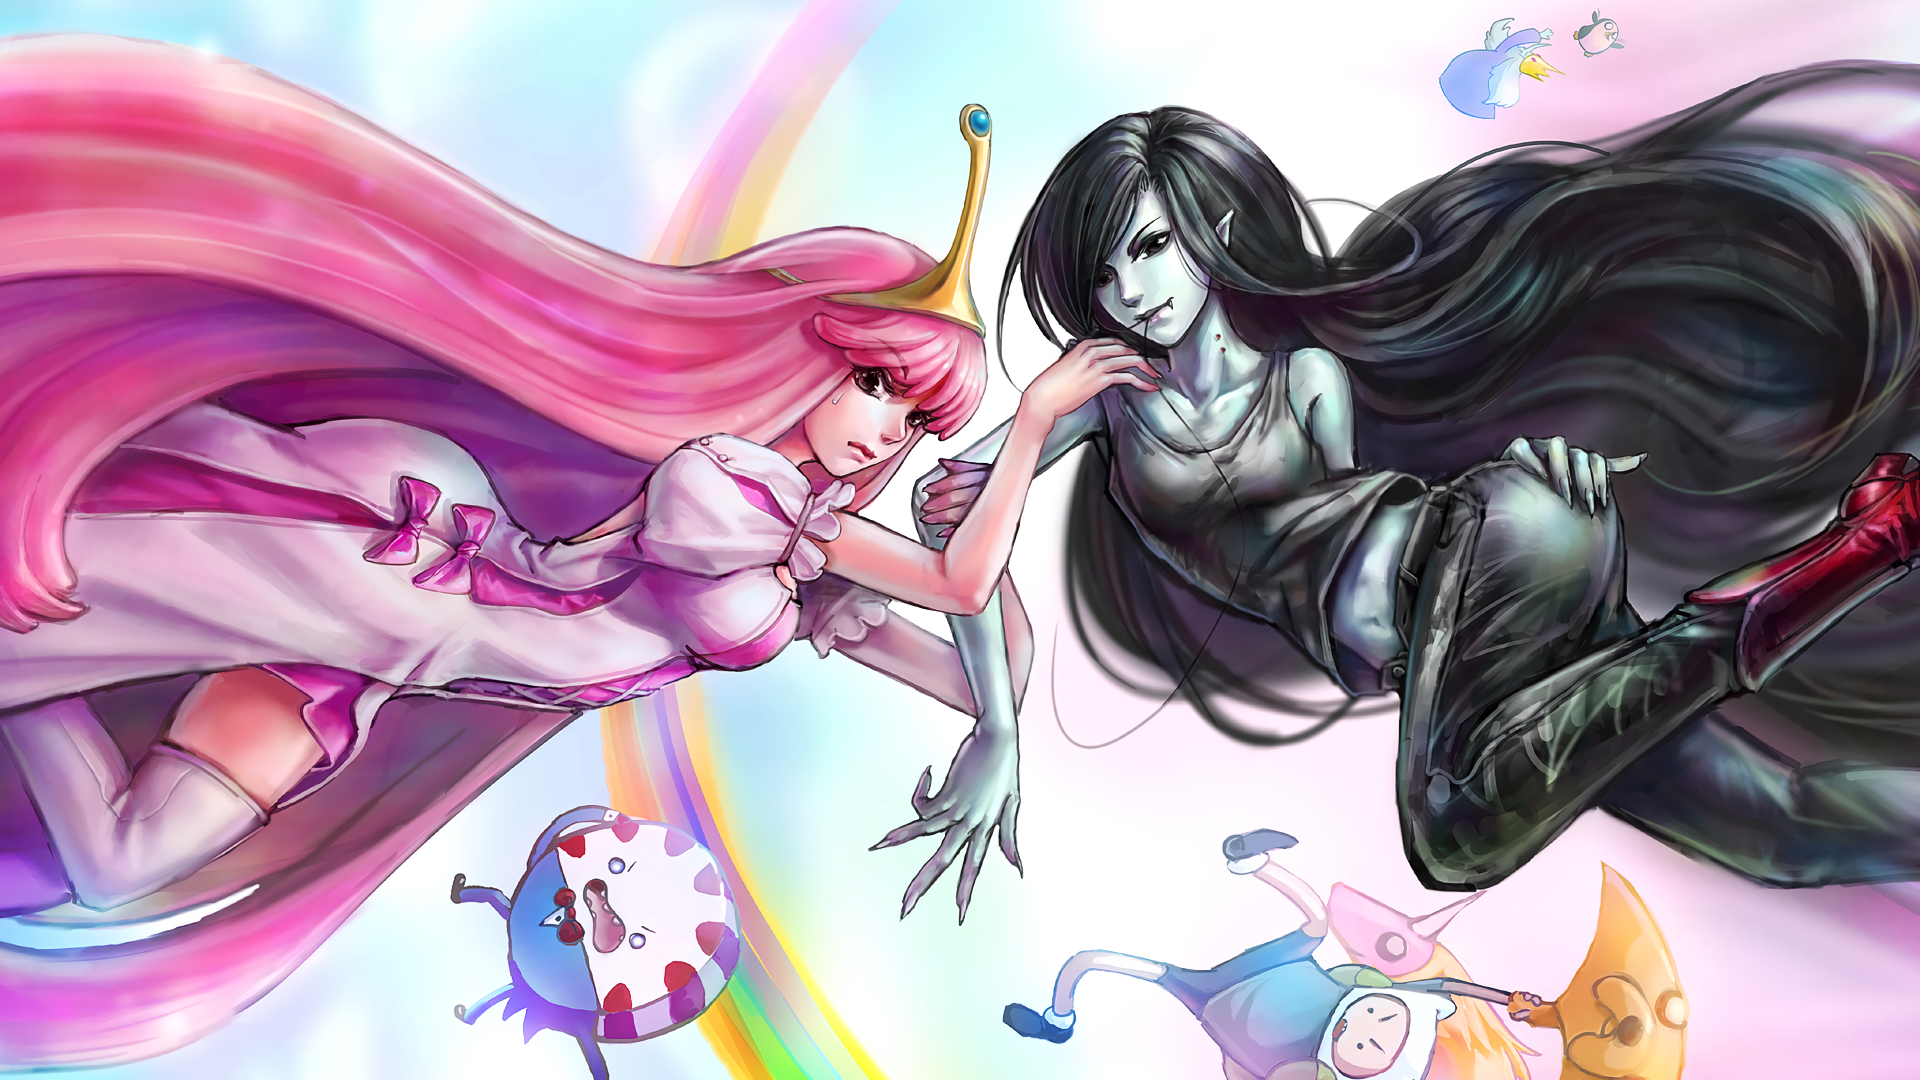 TV Show - Adventure Time  Marceline (Adventure Time) Princess Bubblegum Jake the Dog Finn (Adventure Time) Wallpaper